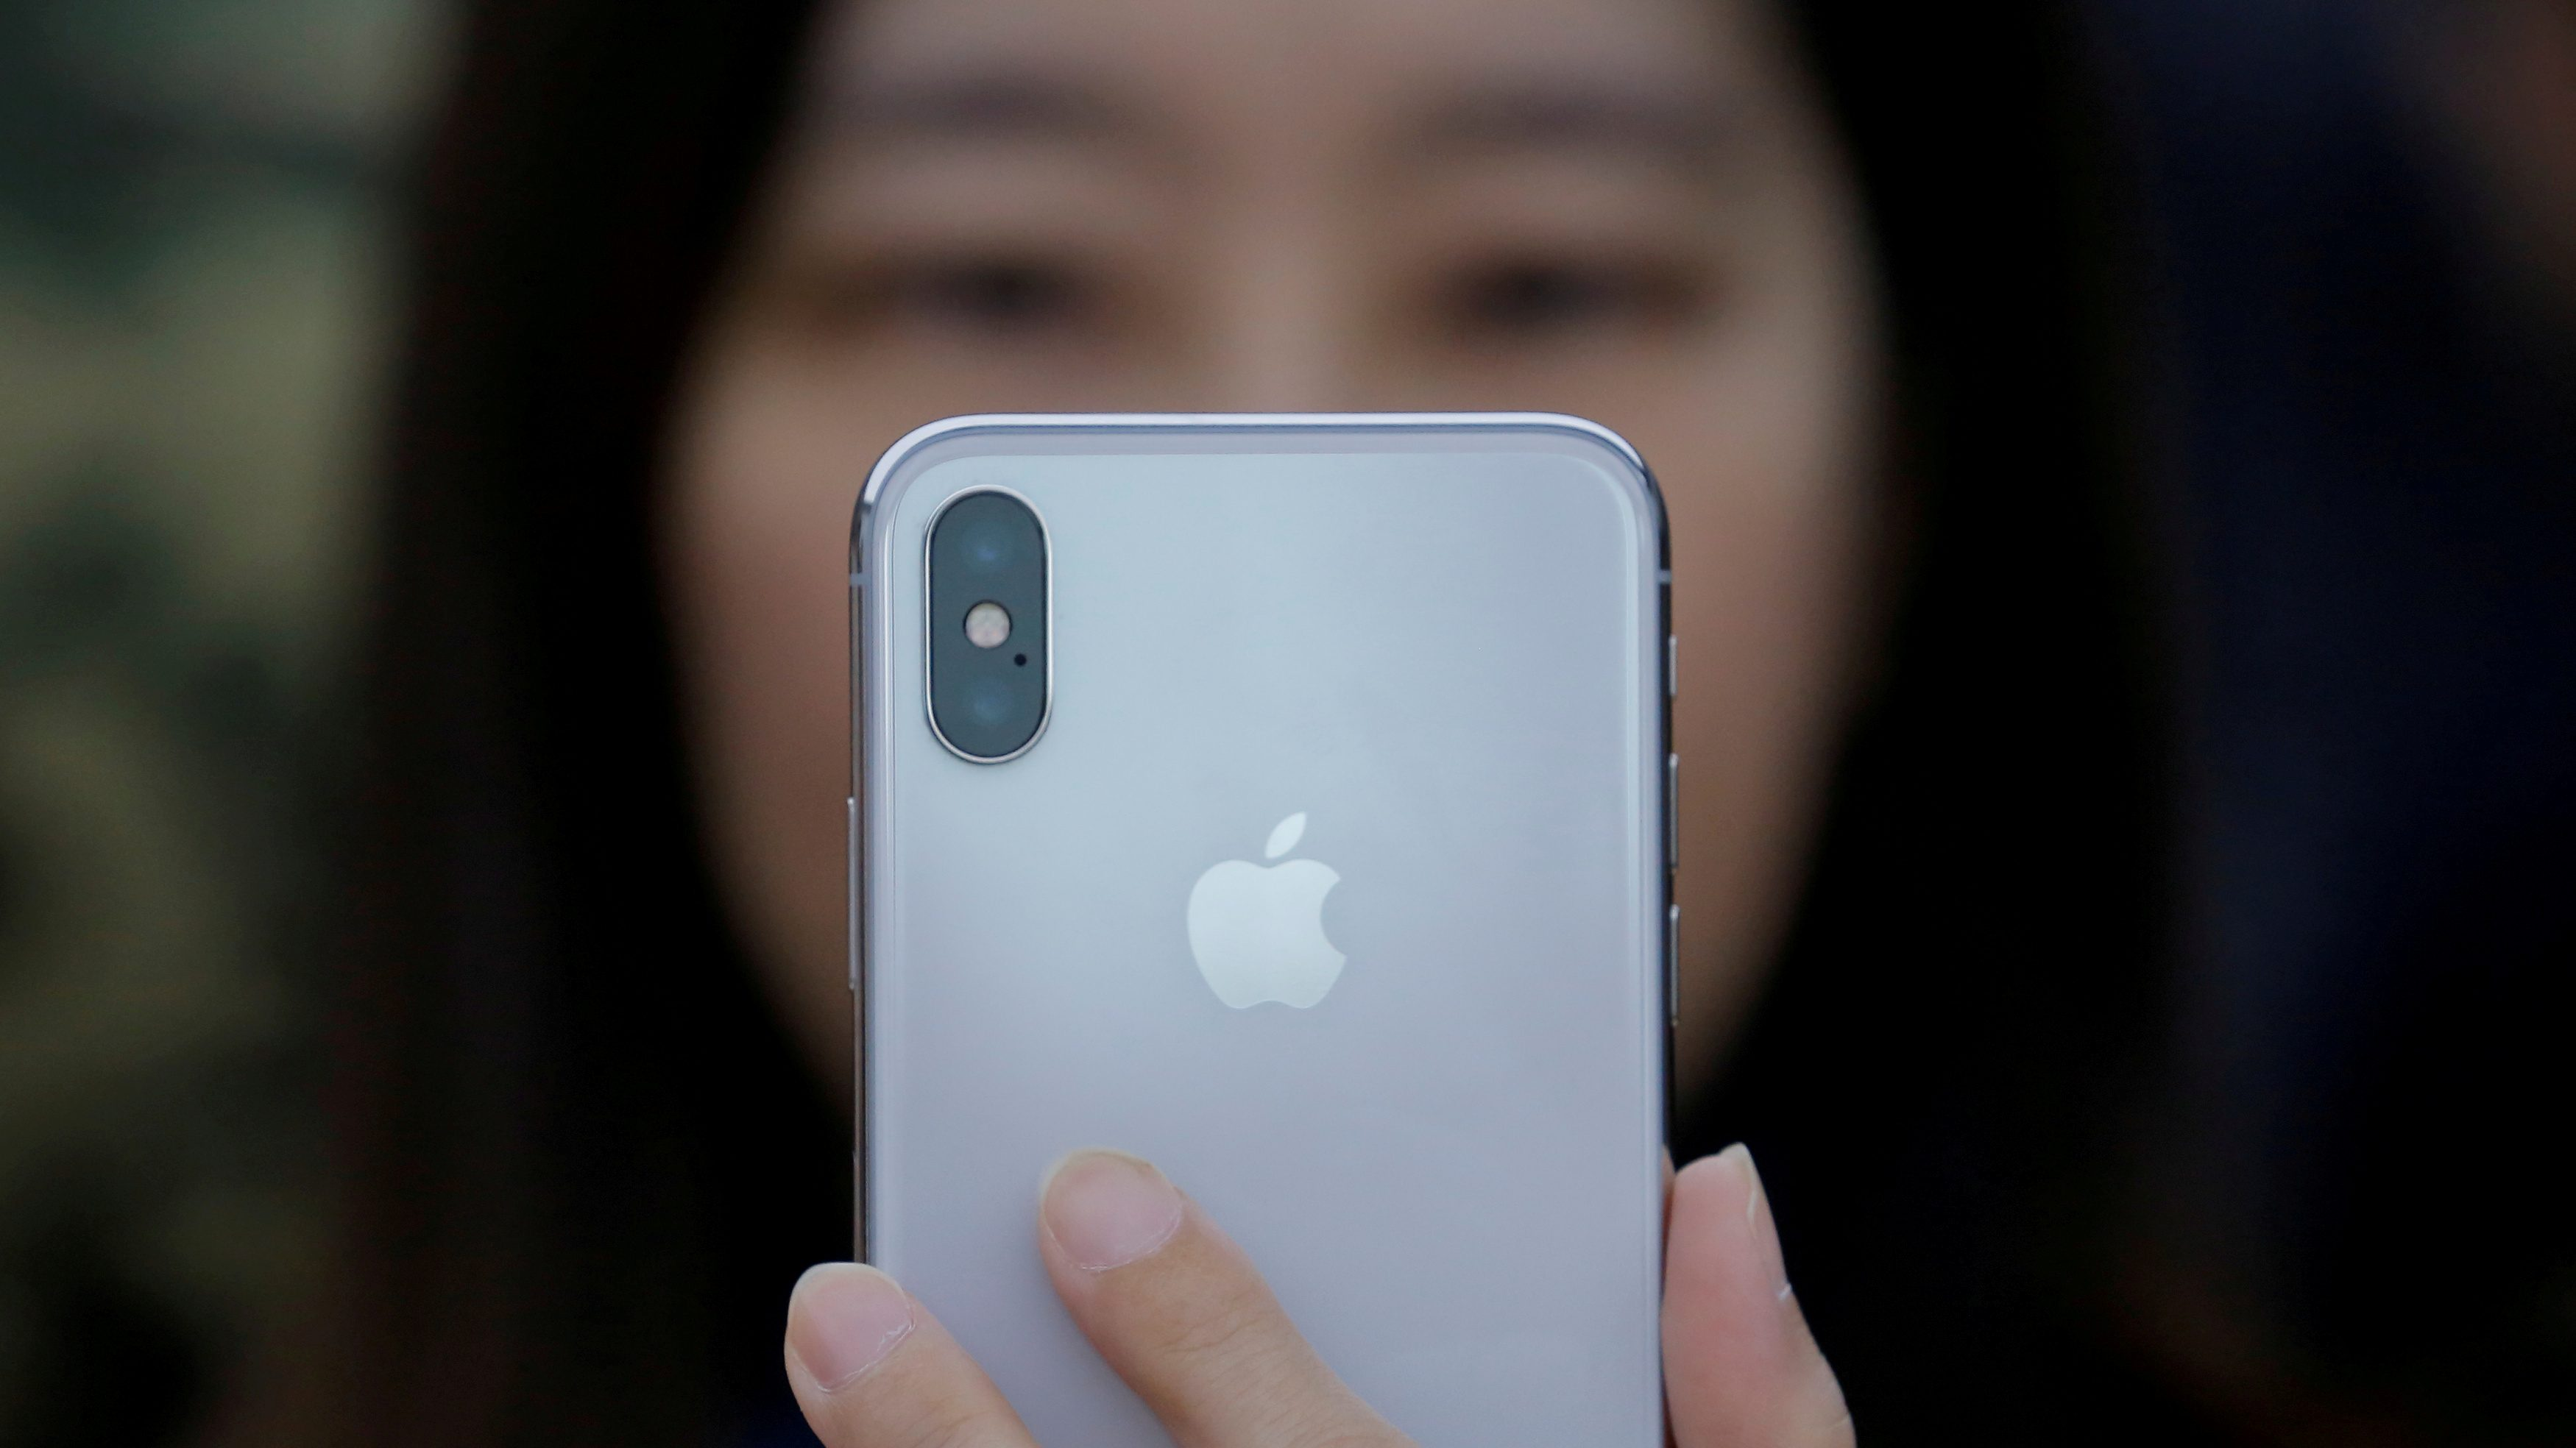 A attendee uses a new iPhone X during a presentation for the media in Beijing, China October 31, 2017.